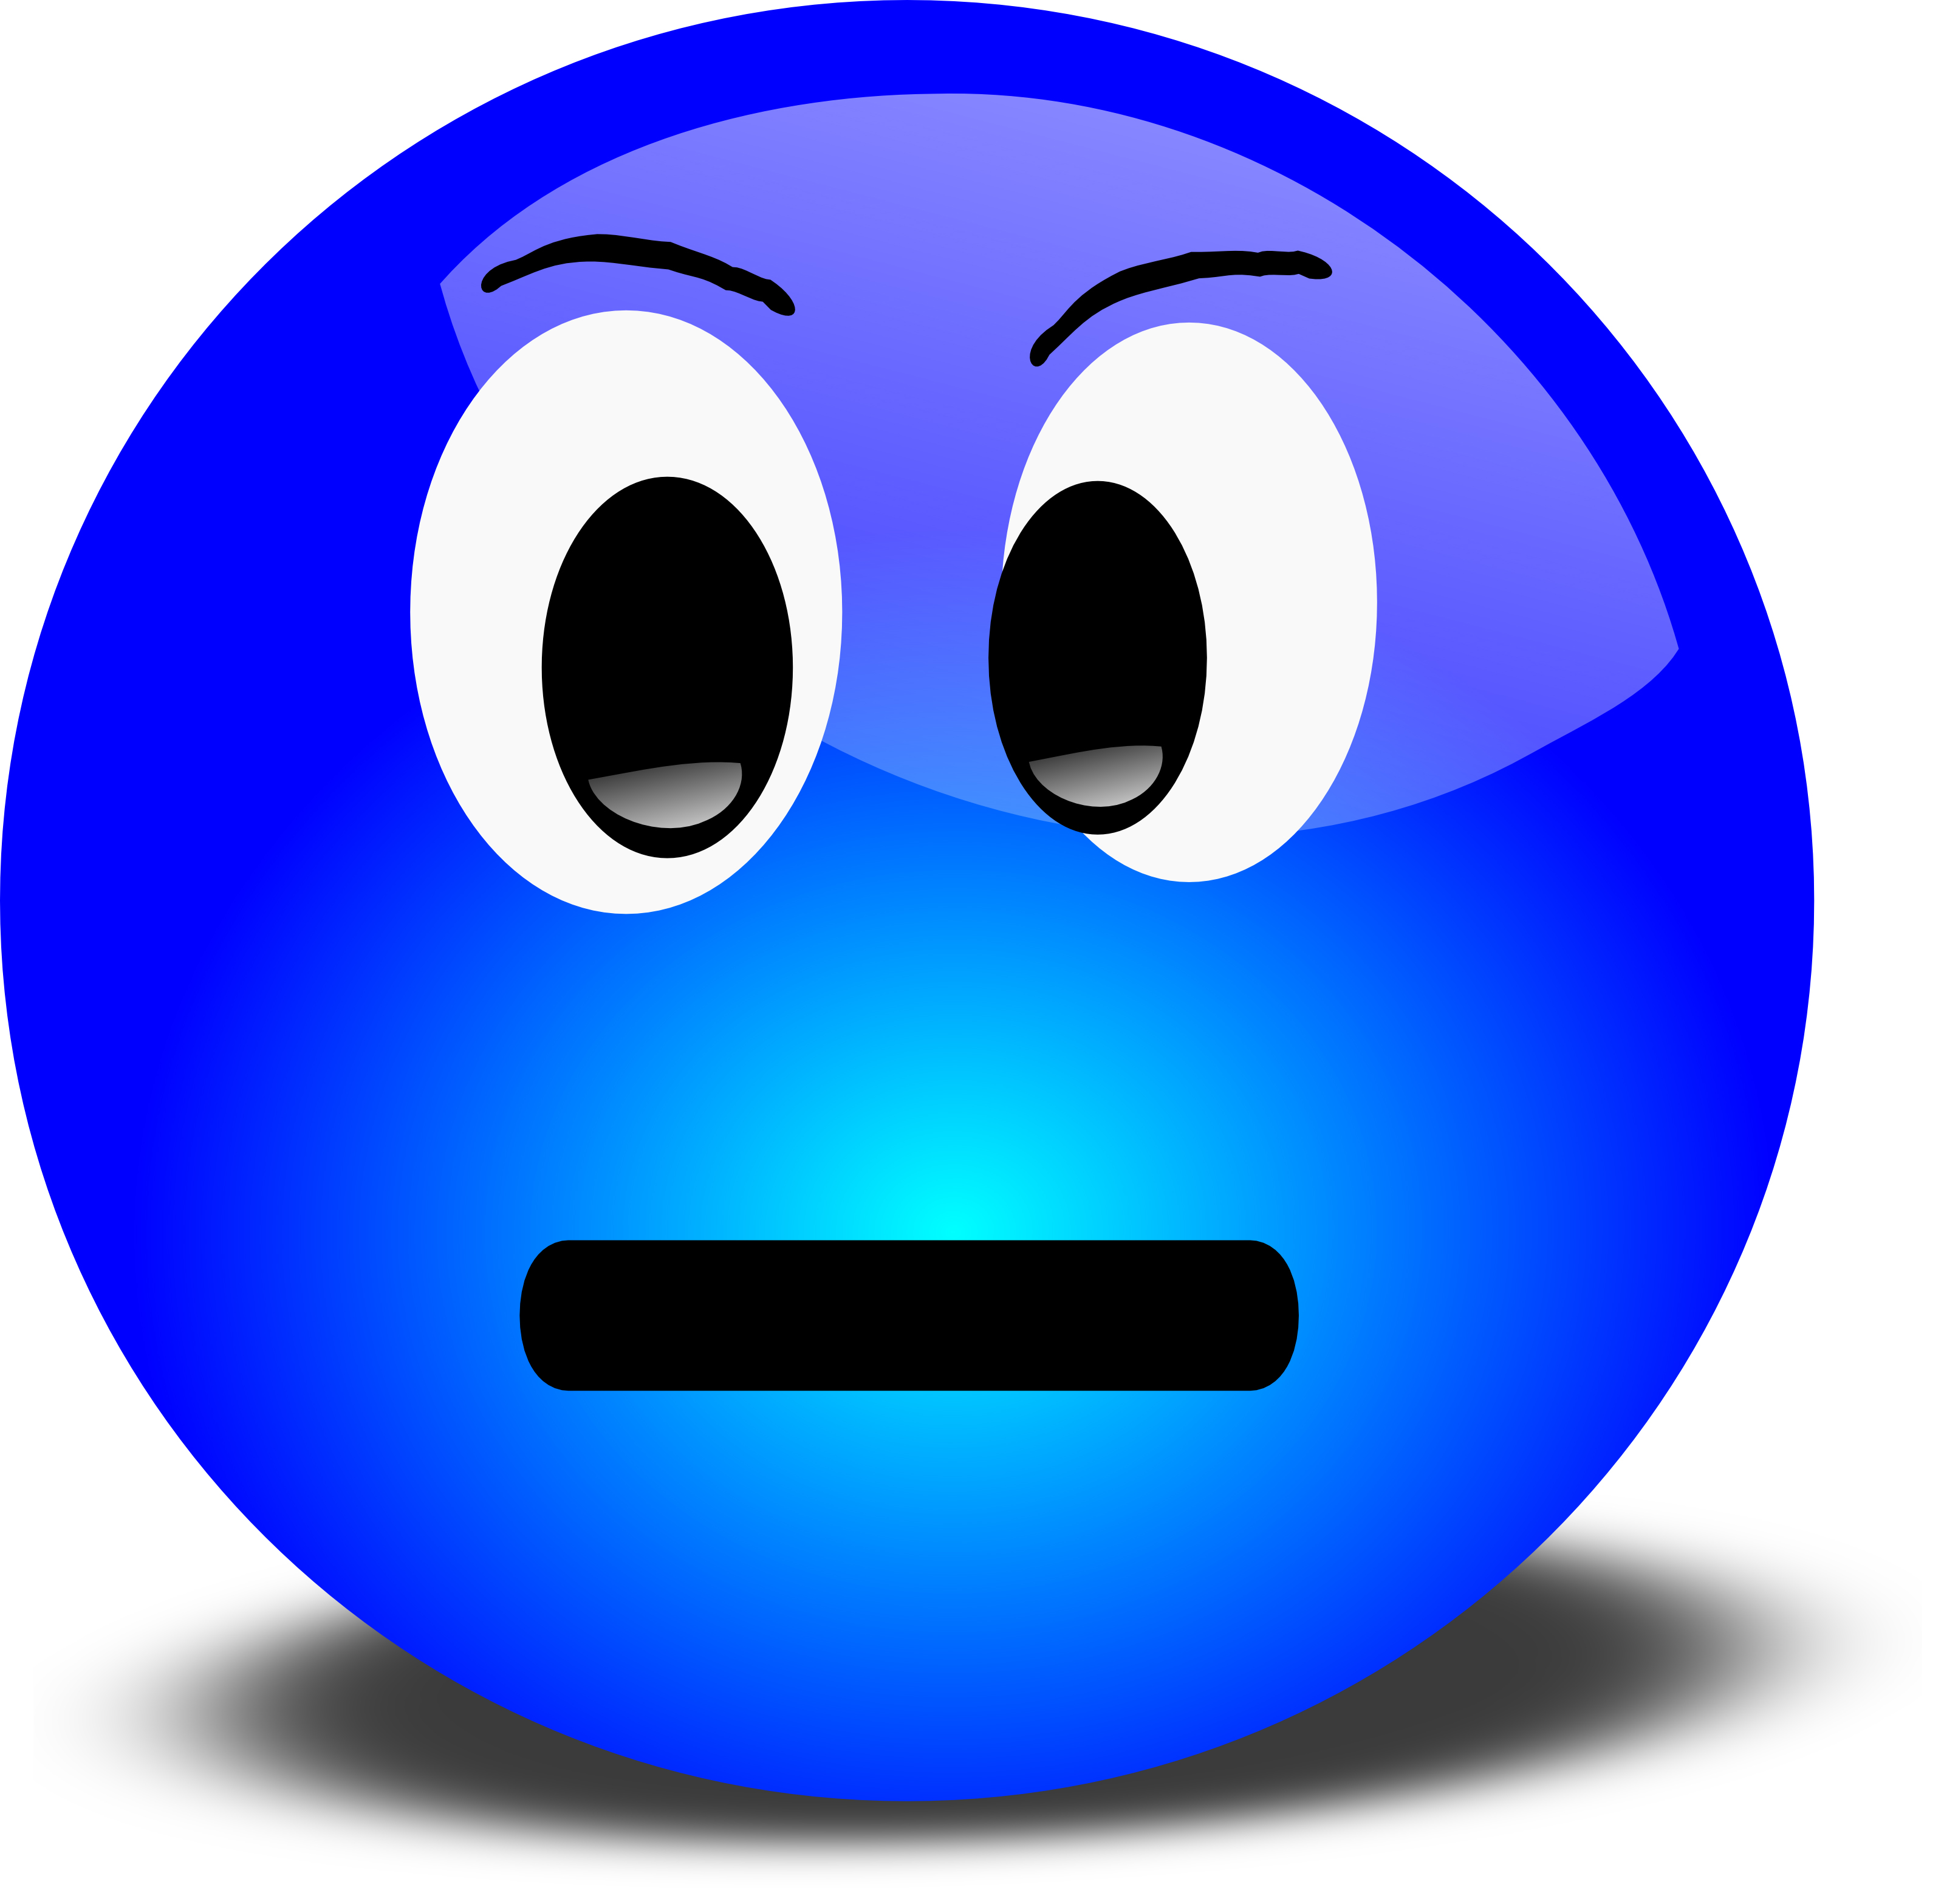 3D Disgruntled Smiley Face Clipart Illustration.